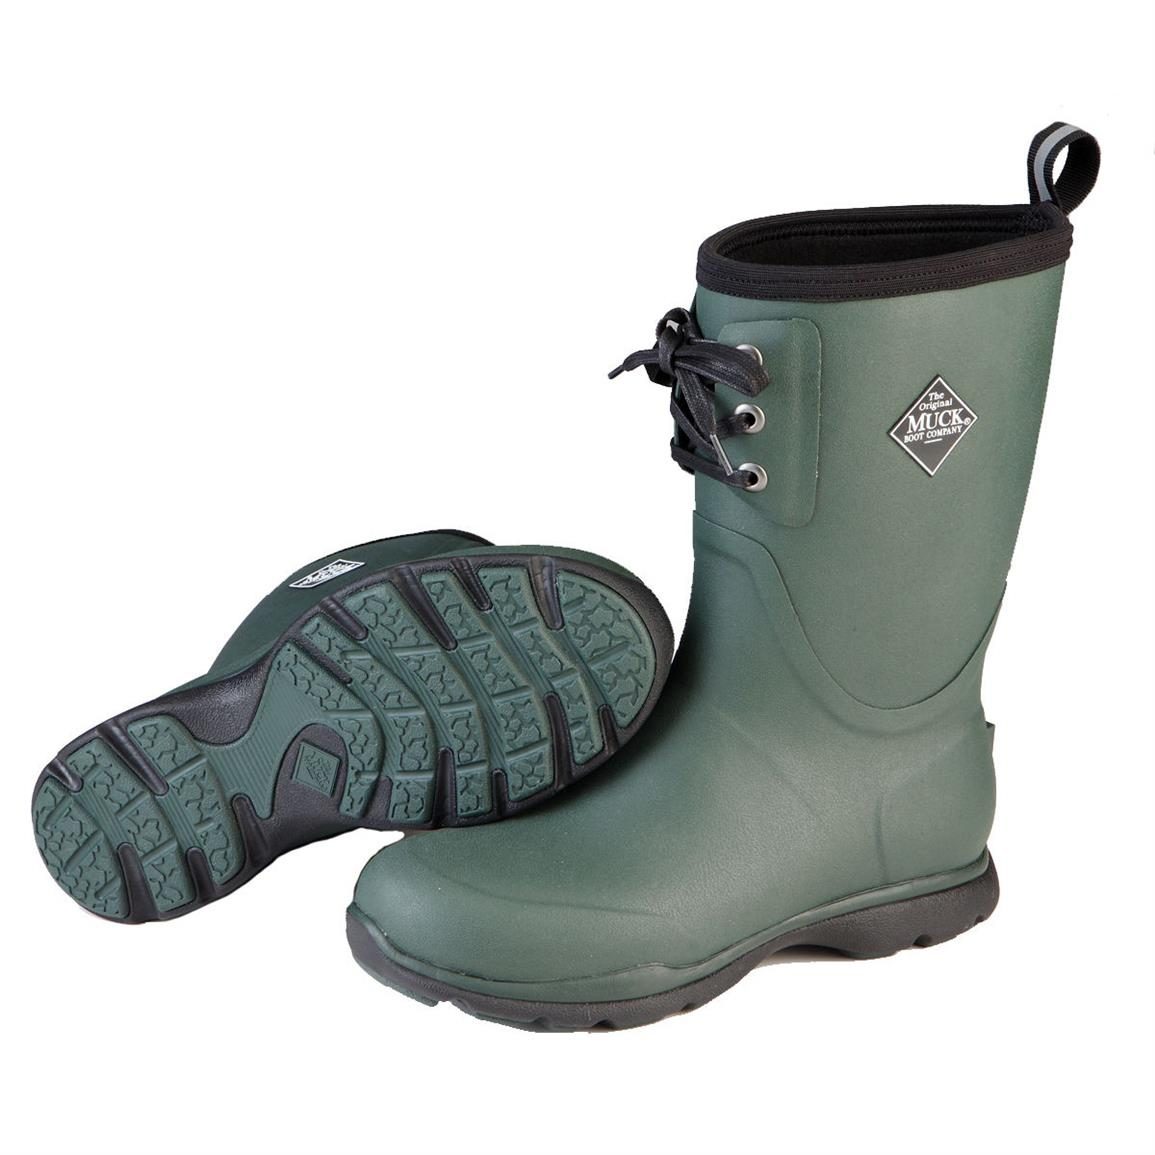 Muck Arctic Excursion Lace Mid Waterproof Insulated Rubber Boots, Green